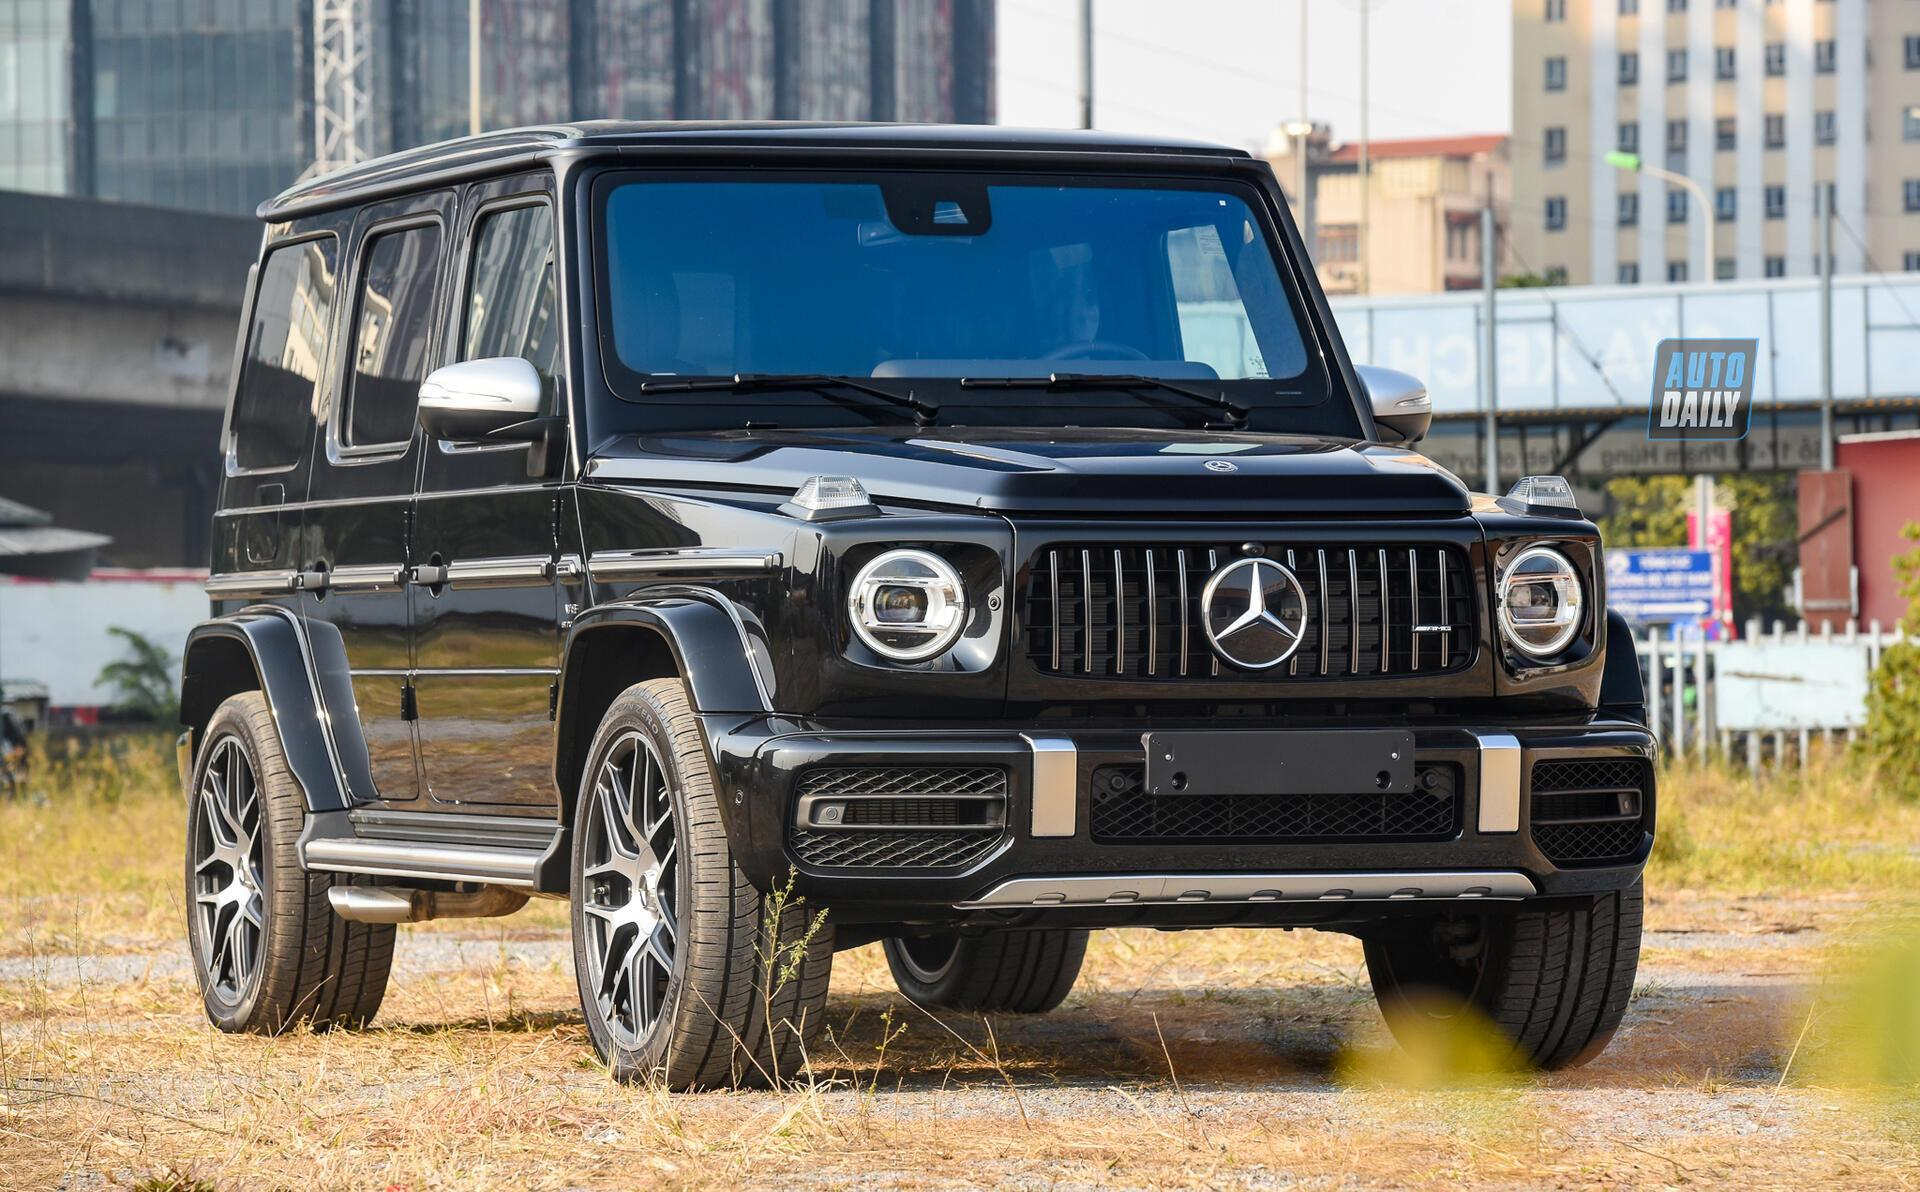 anh-chi-tiet-mercedes-amg-g63-stronger-than-time-gia-12-ty-dong